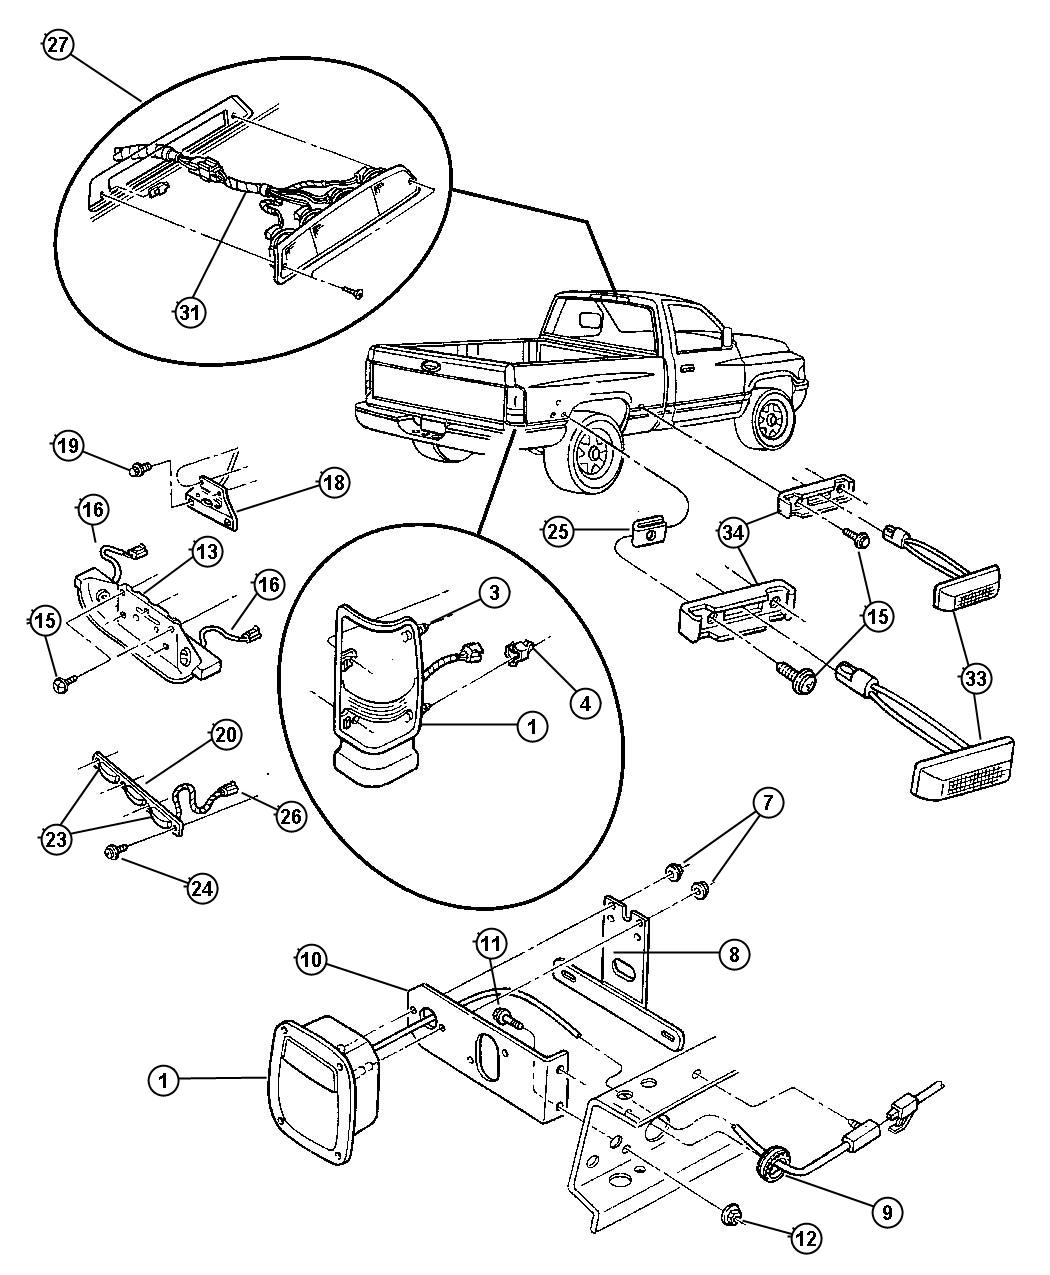 22+ 06 Dodge Ram Tail Light Wiring Diagram Images